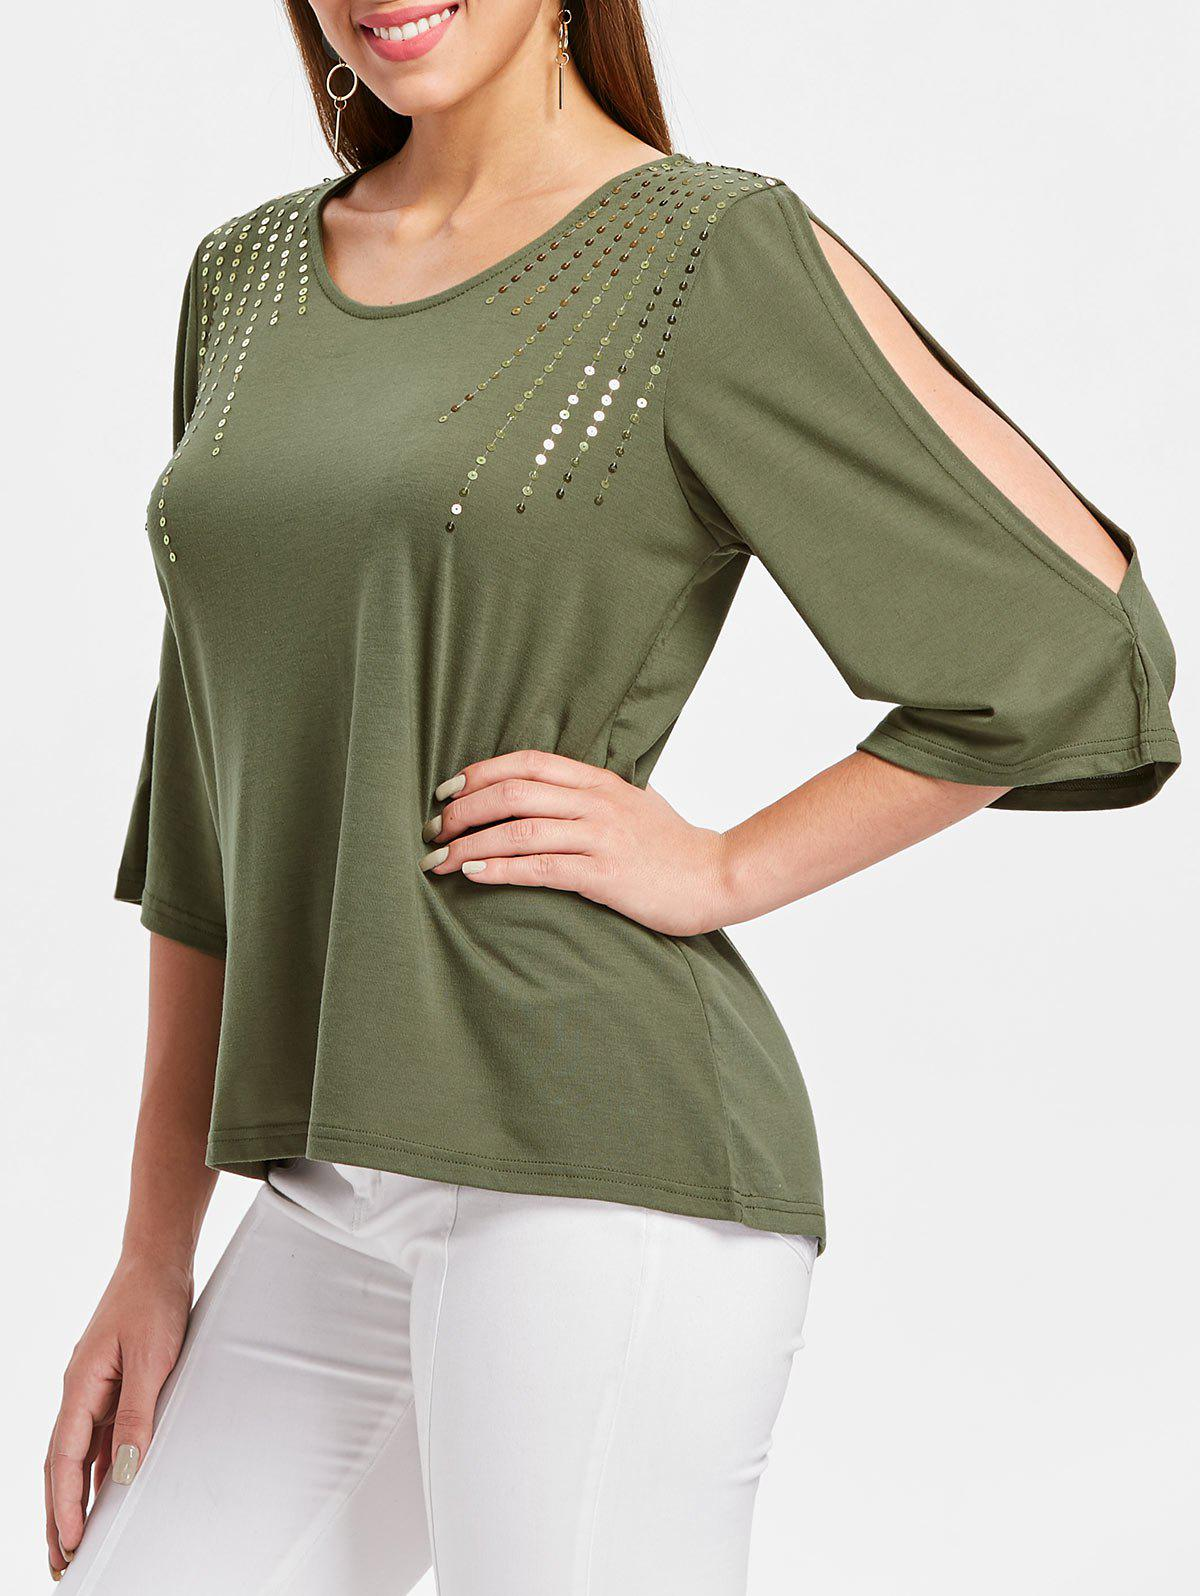 Cut Out Sleeve Sequin Embellished T-shirt - ARMY GREEN M